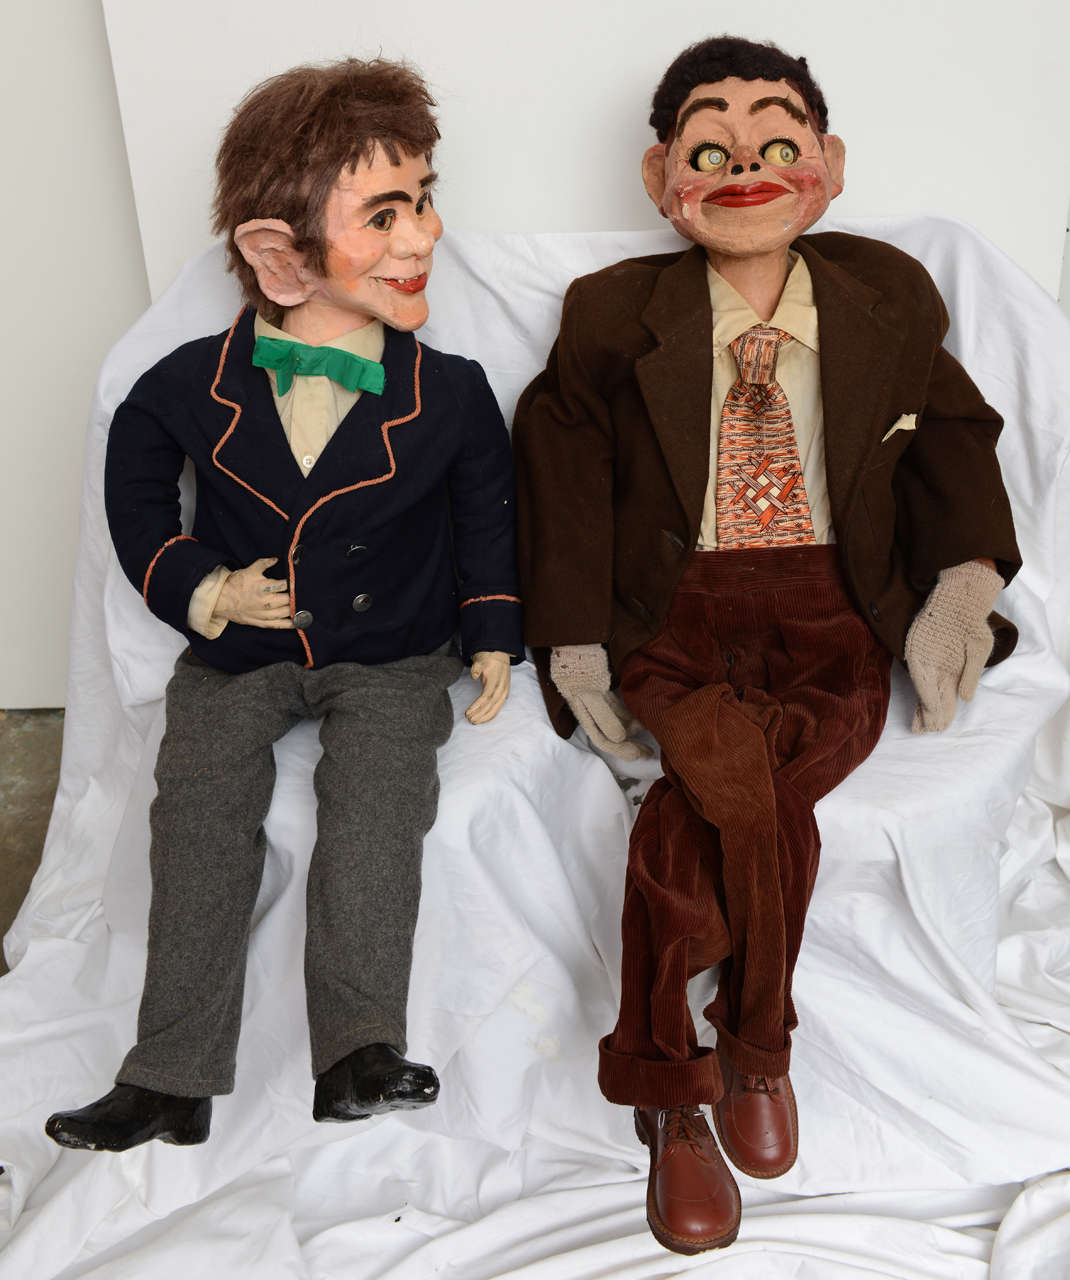 Pair of Ventriloquist Dummies image 3